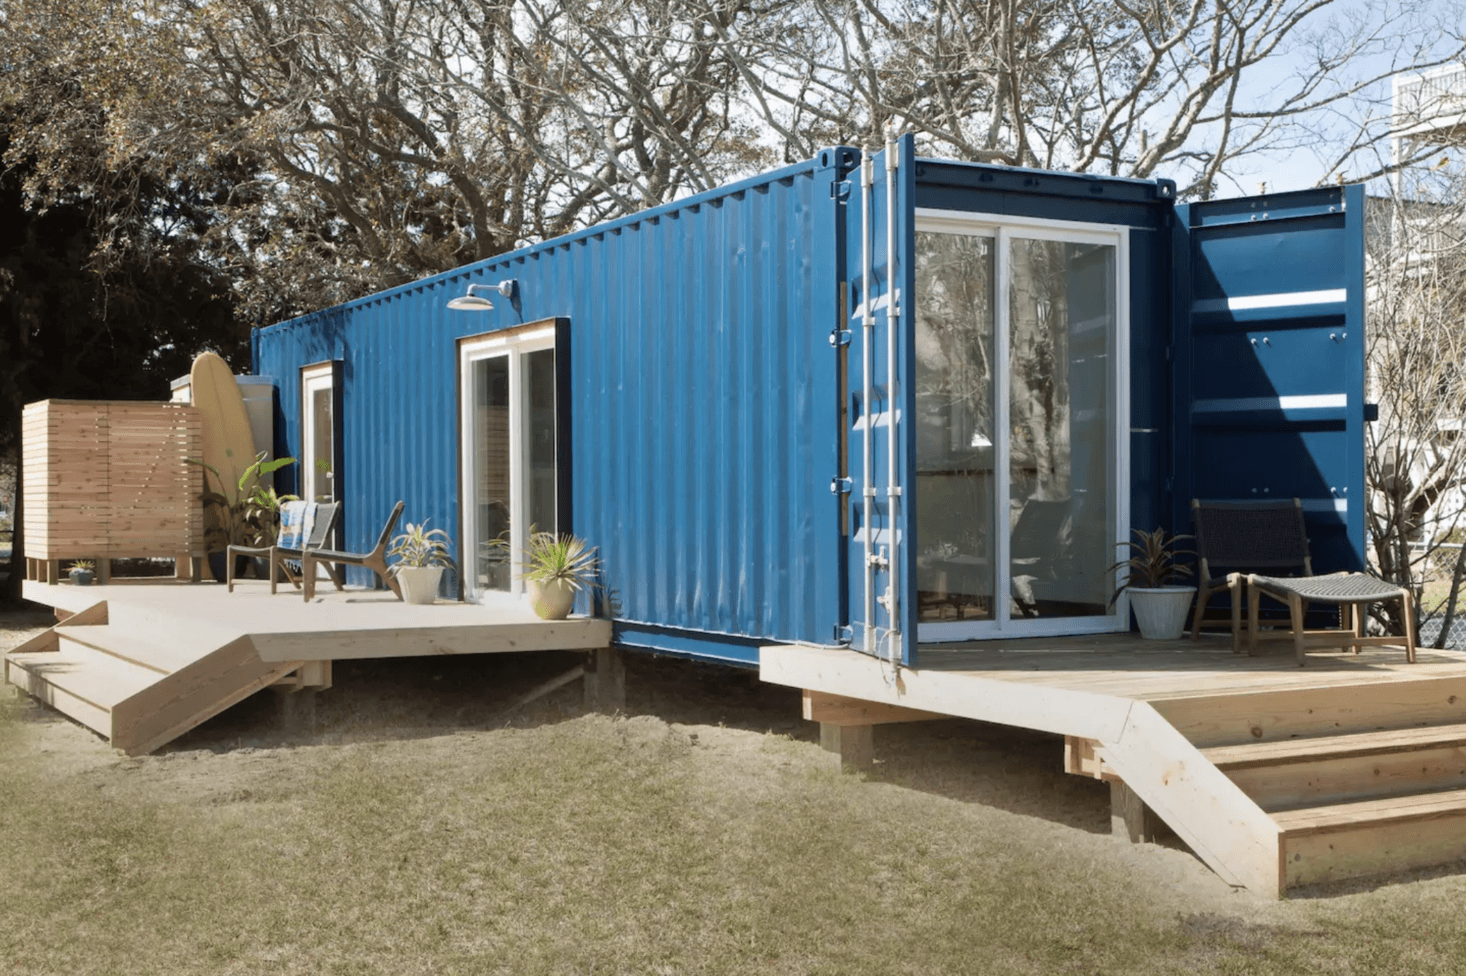 10 Repurposed Shipping Containers Are Now Beautiful Houses Container House Container House Plans Shipping Container Home Designs